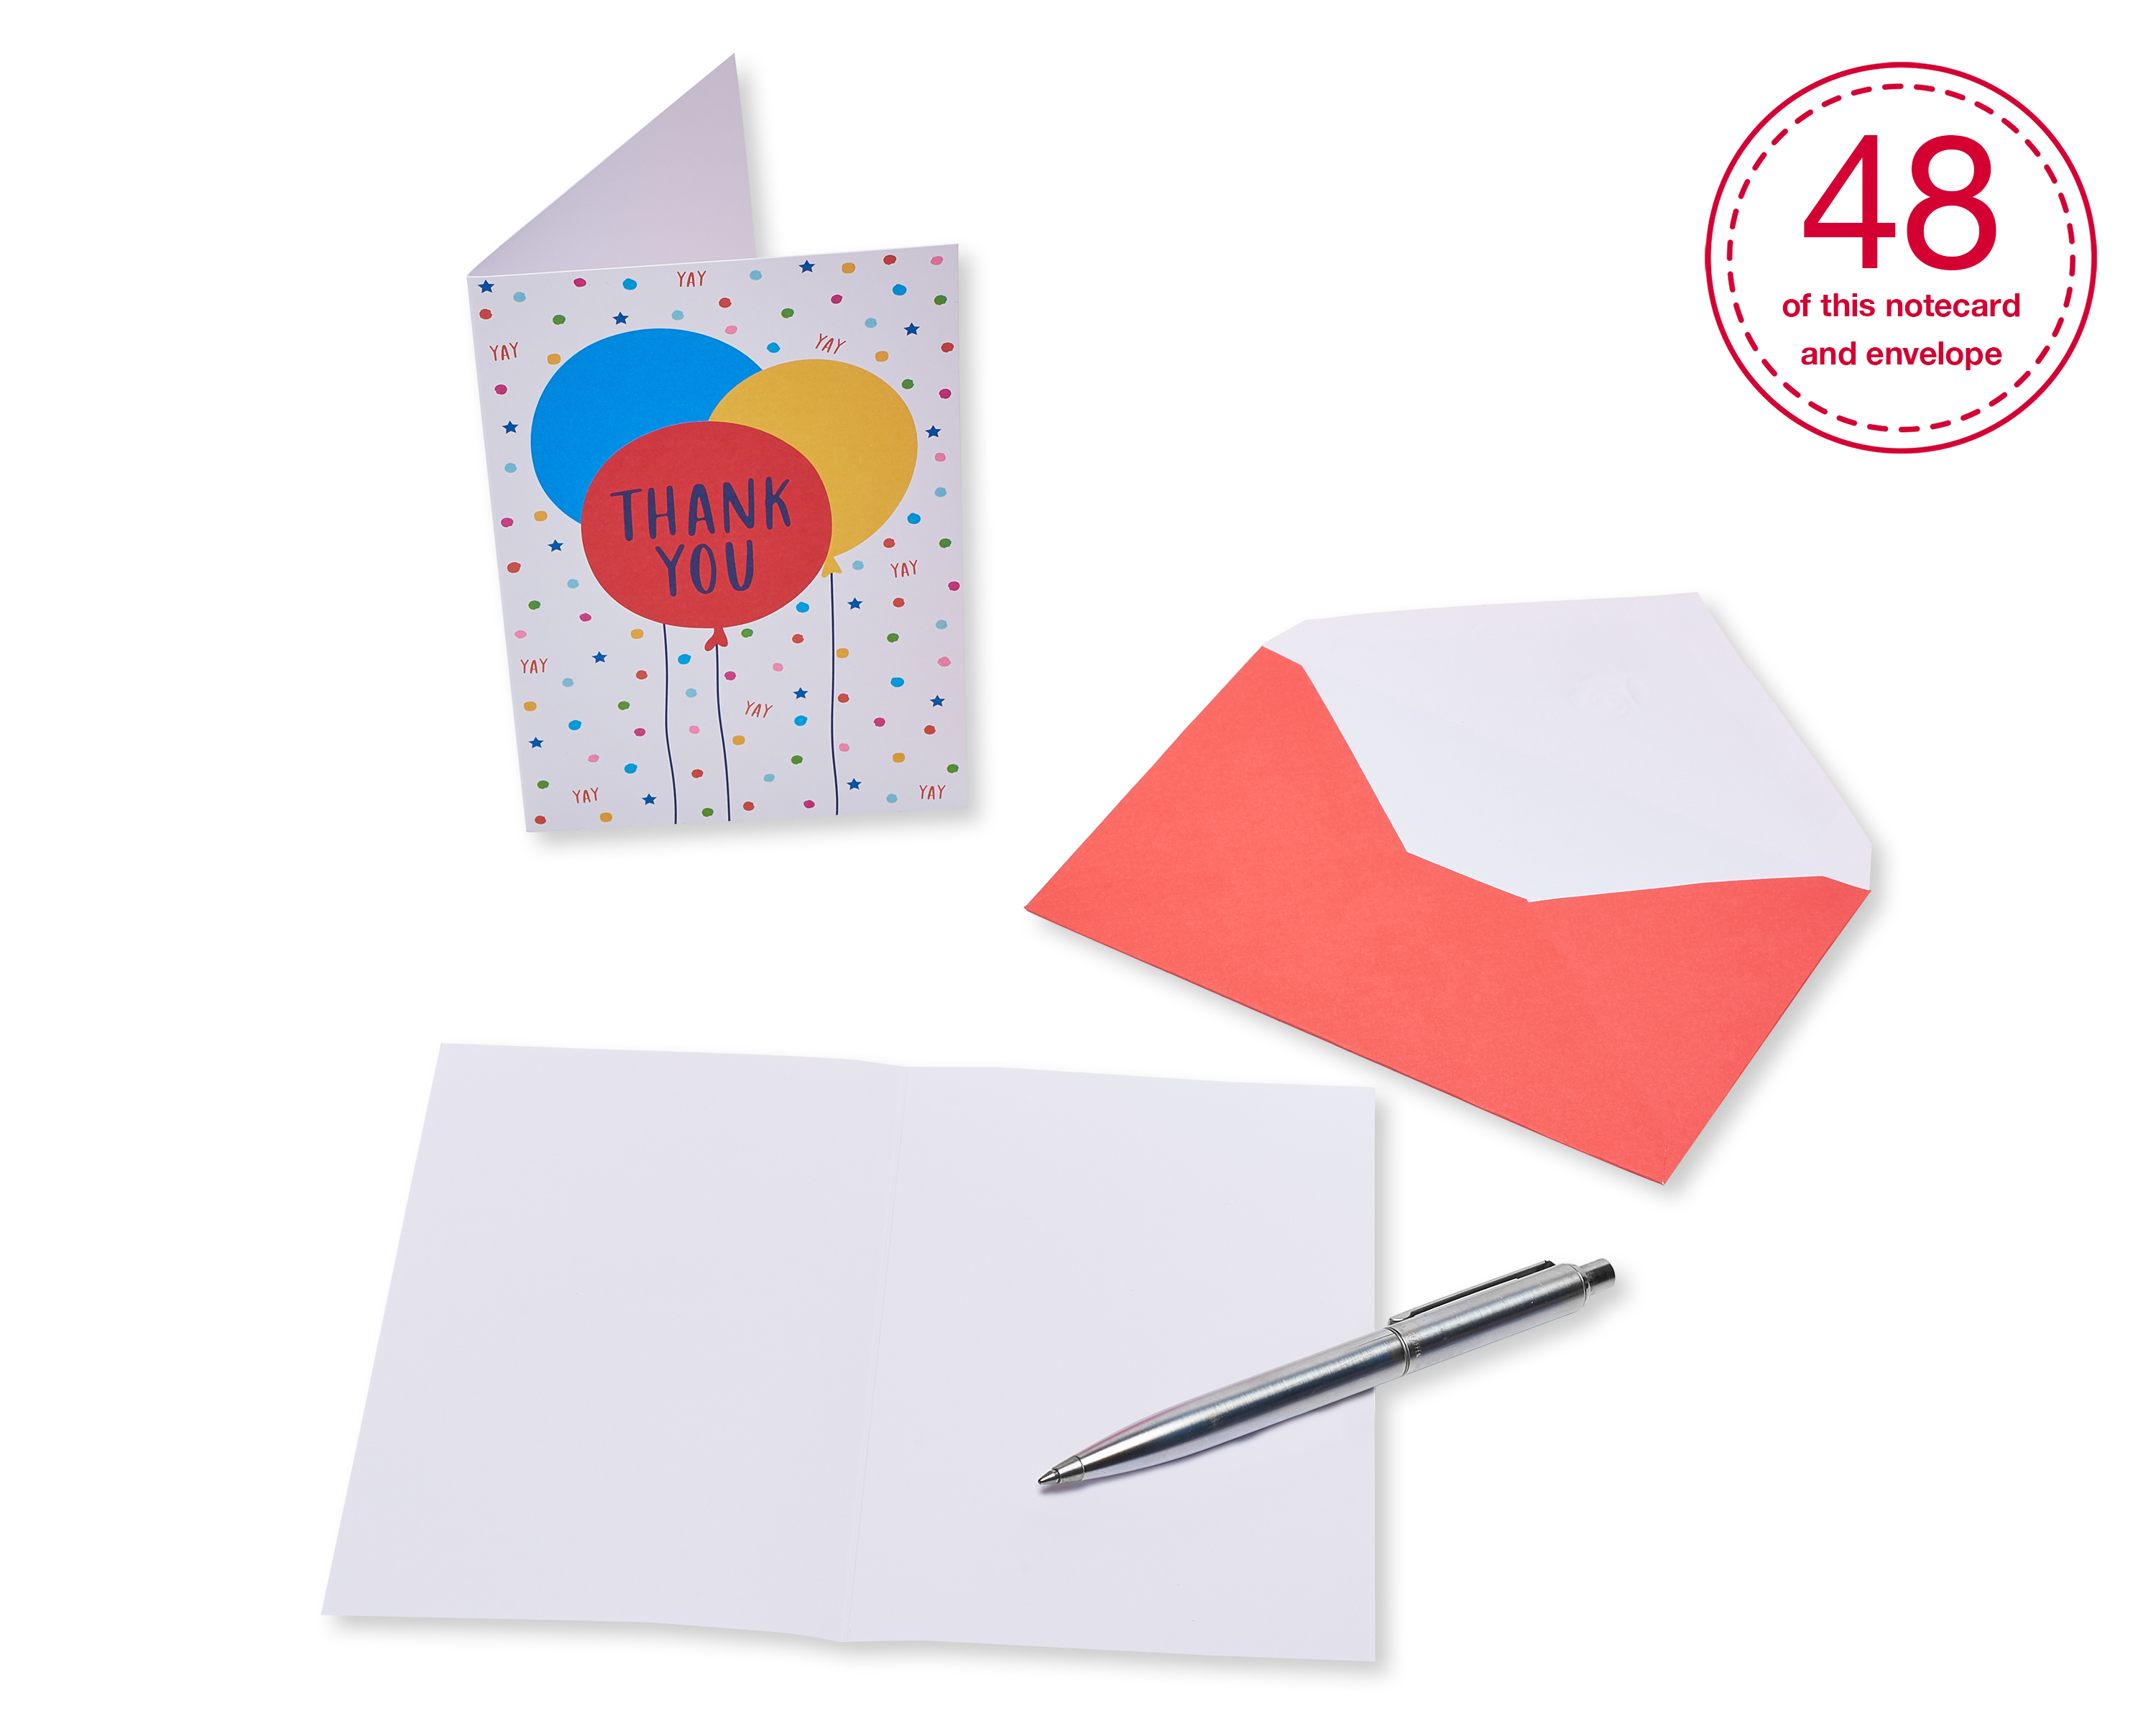 Balloon Thank You American Greetings Bulk Thank You Cards with Envelopes 48-Count Party Balloons 6481758